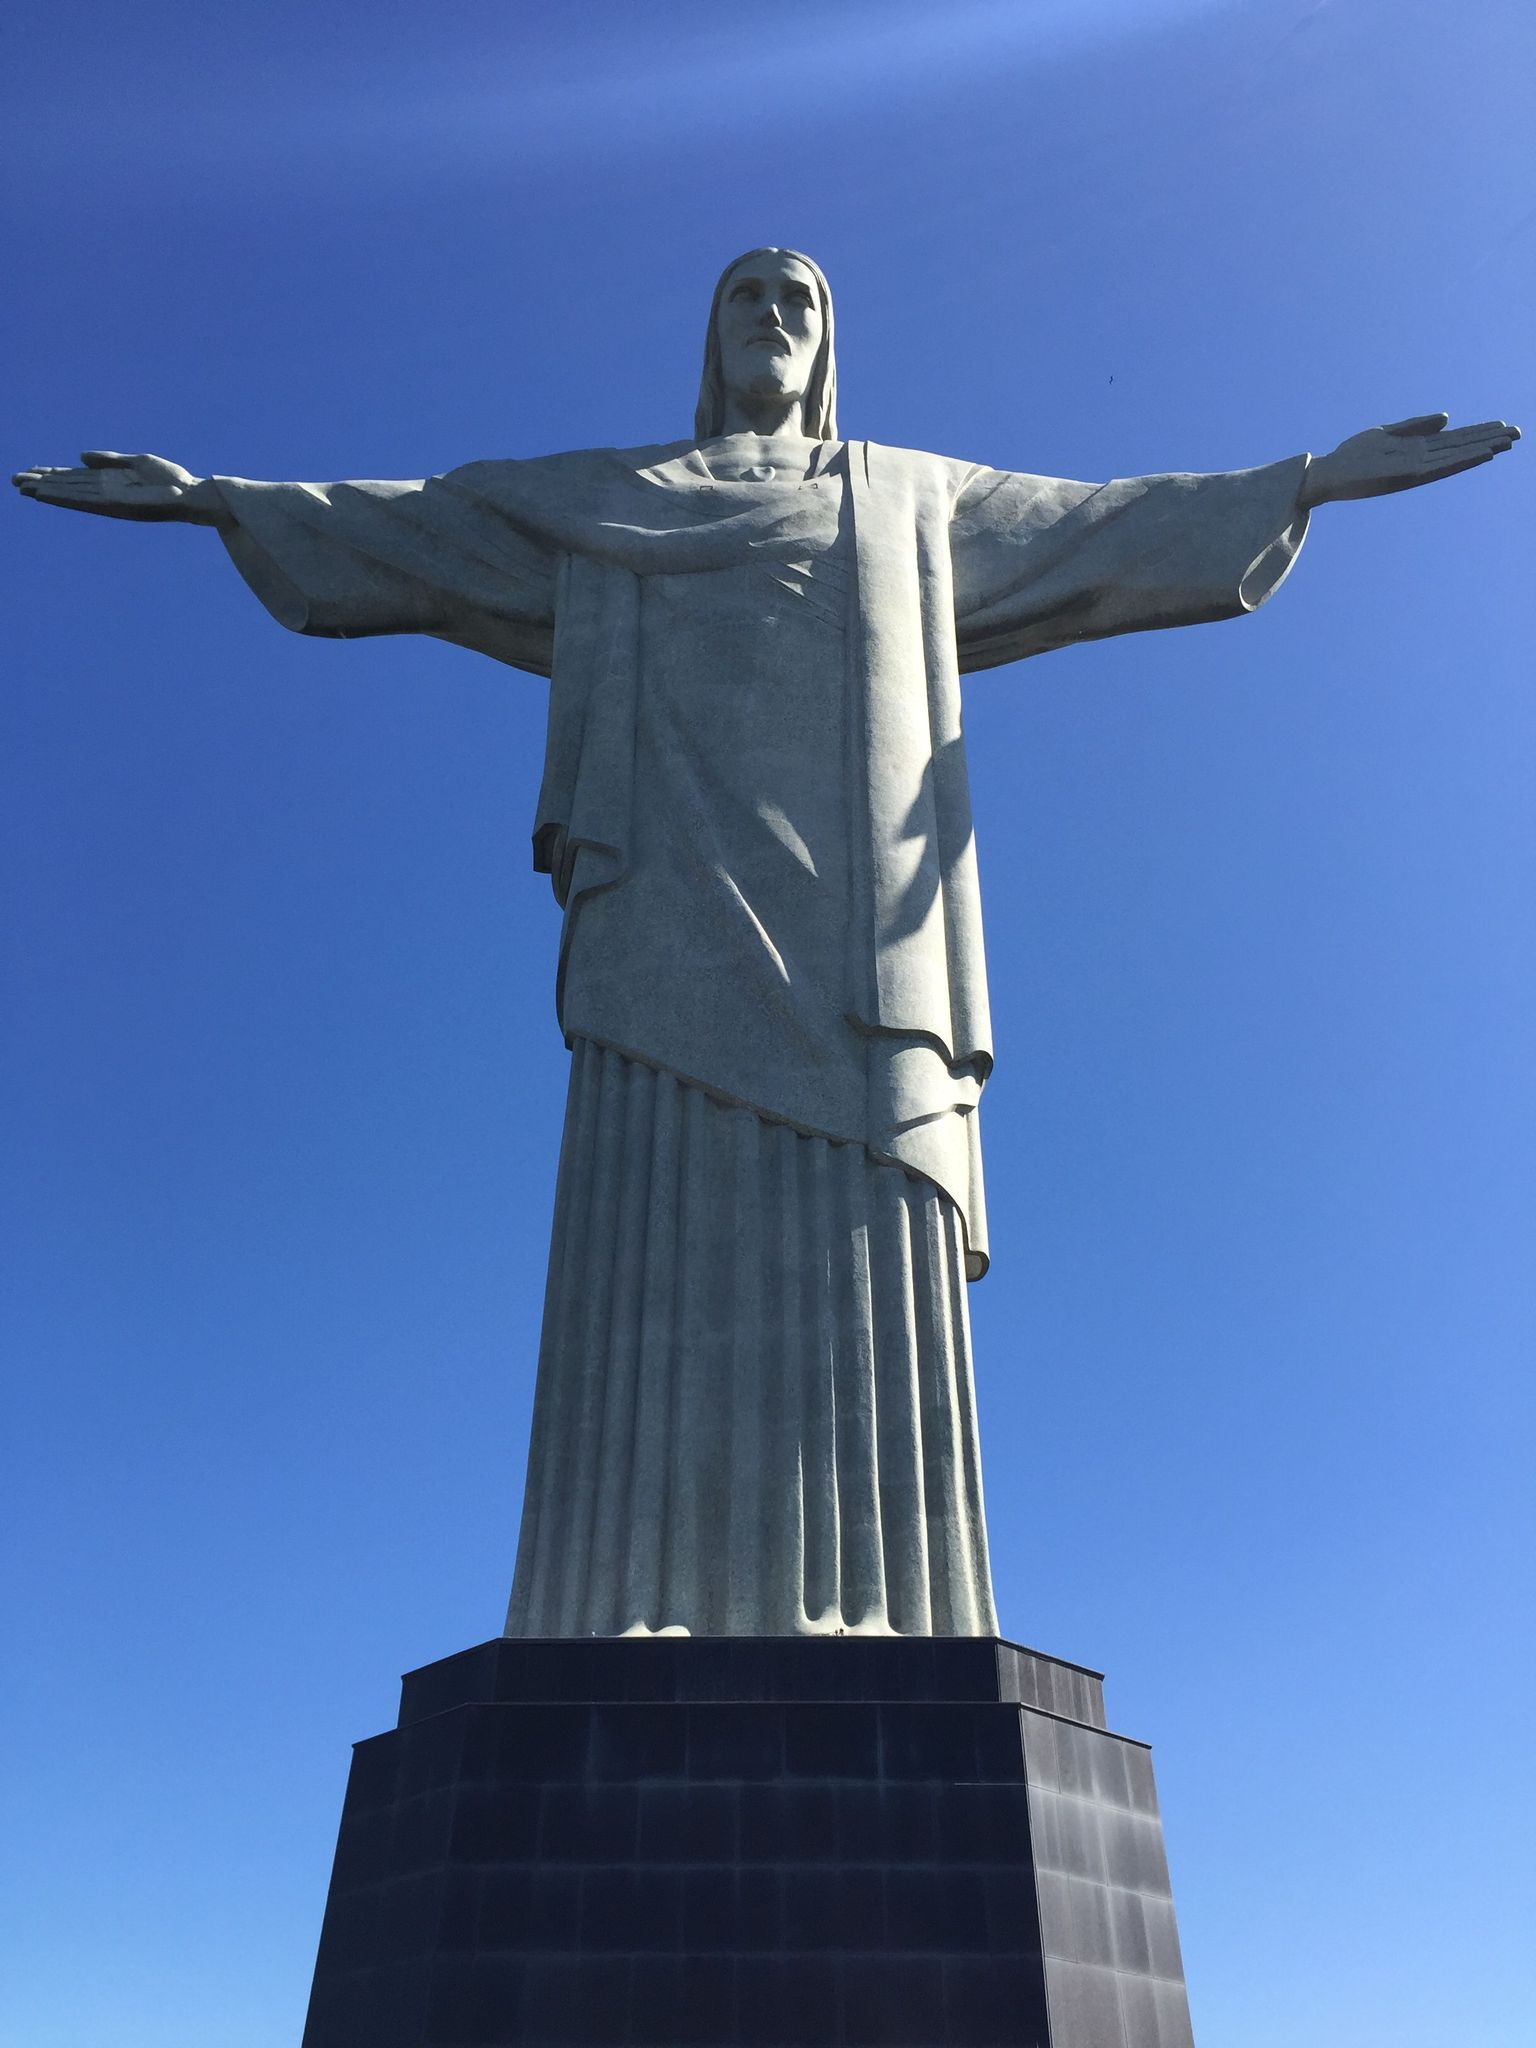 MORE PHOTOS, Rio Experience Full Day Tour (Optional Arrival Transfer)